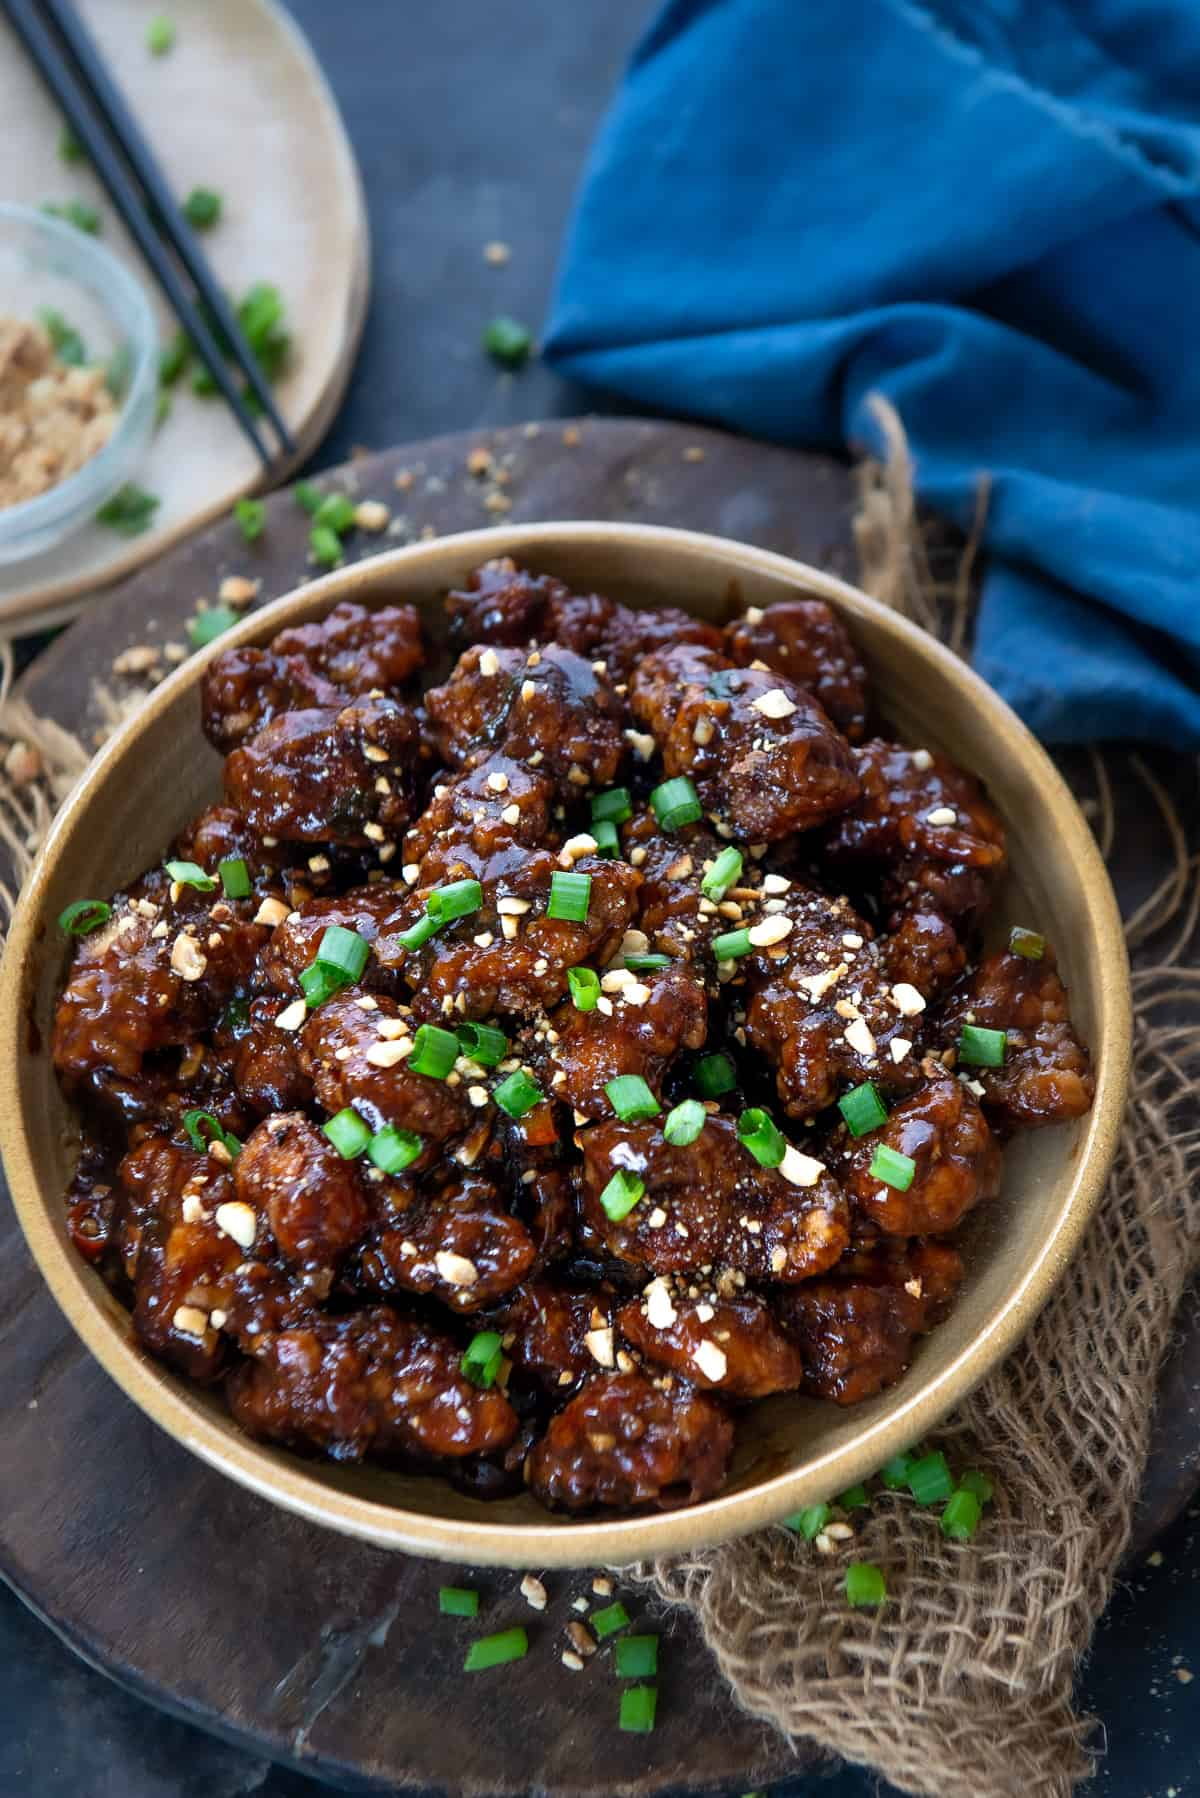 General tso's chicken served in a bowl.